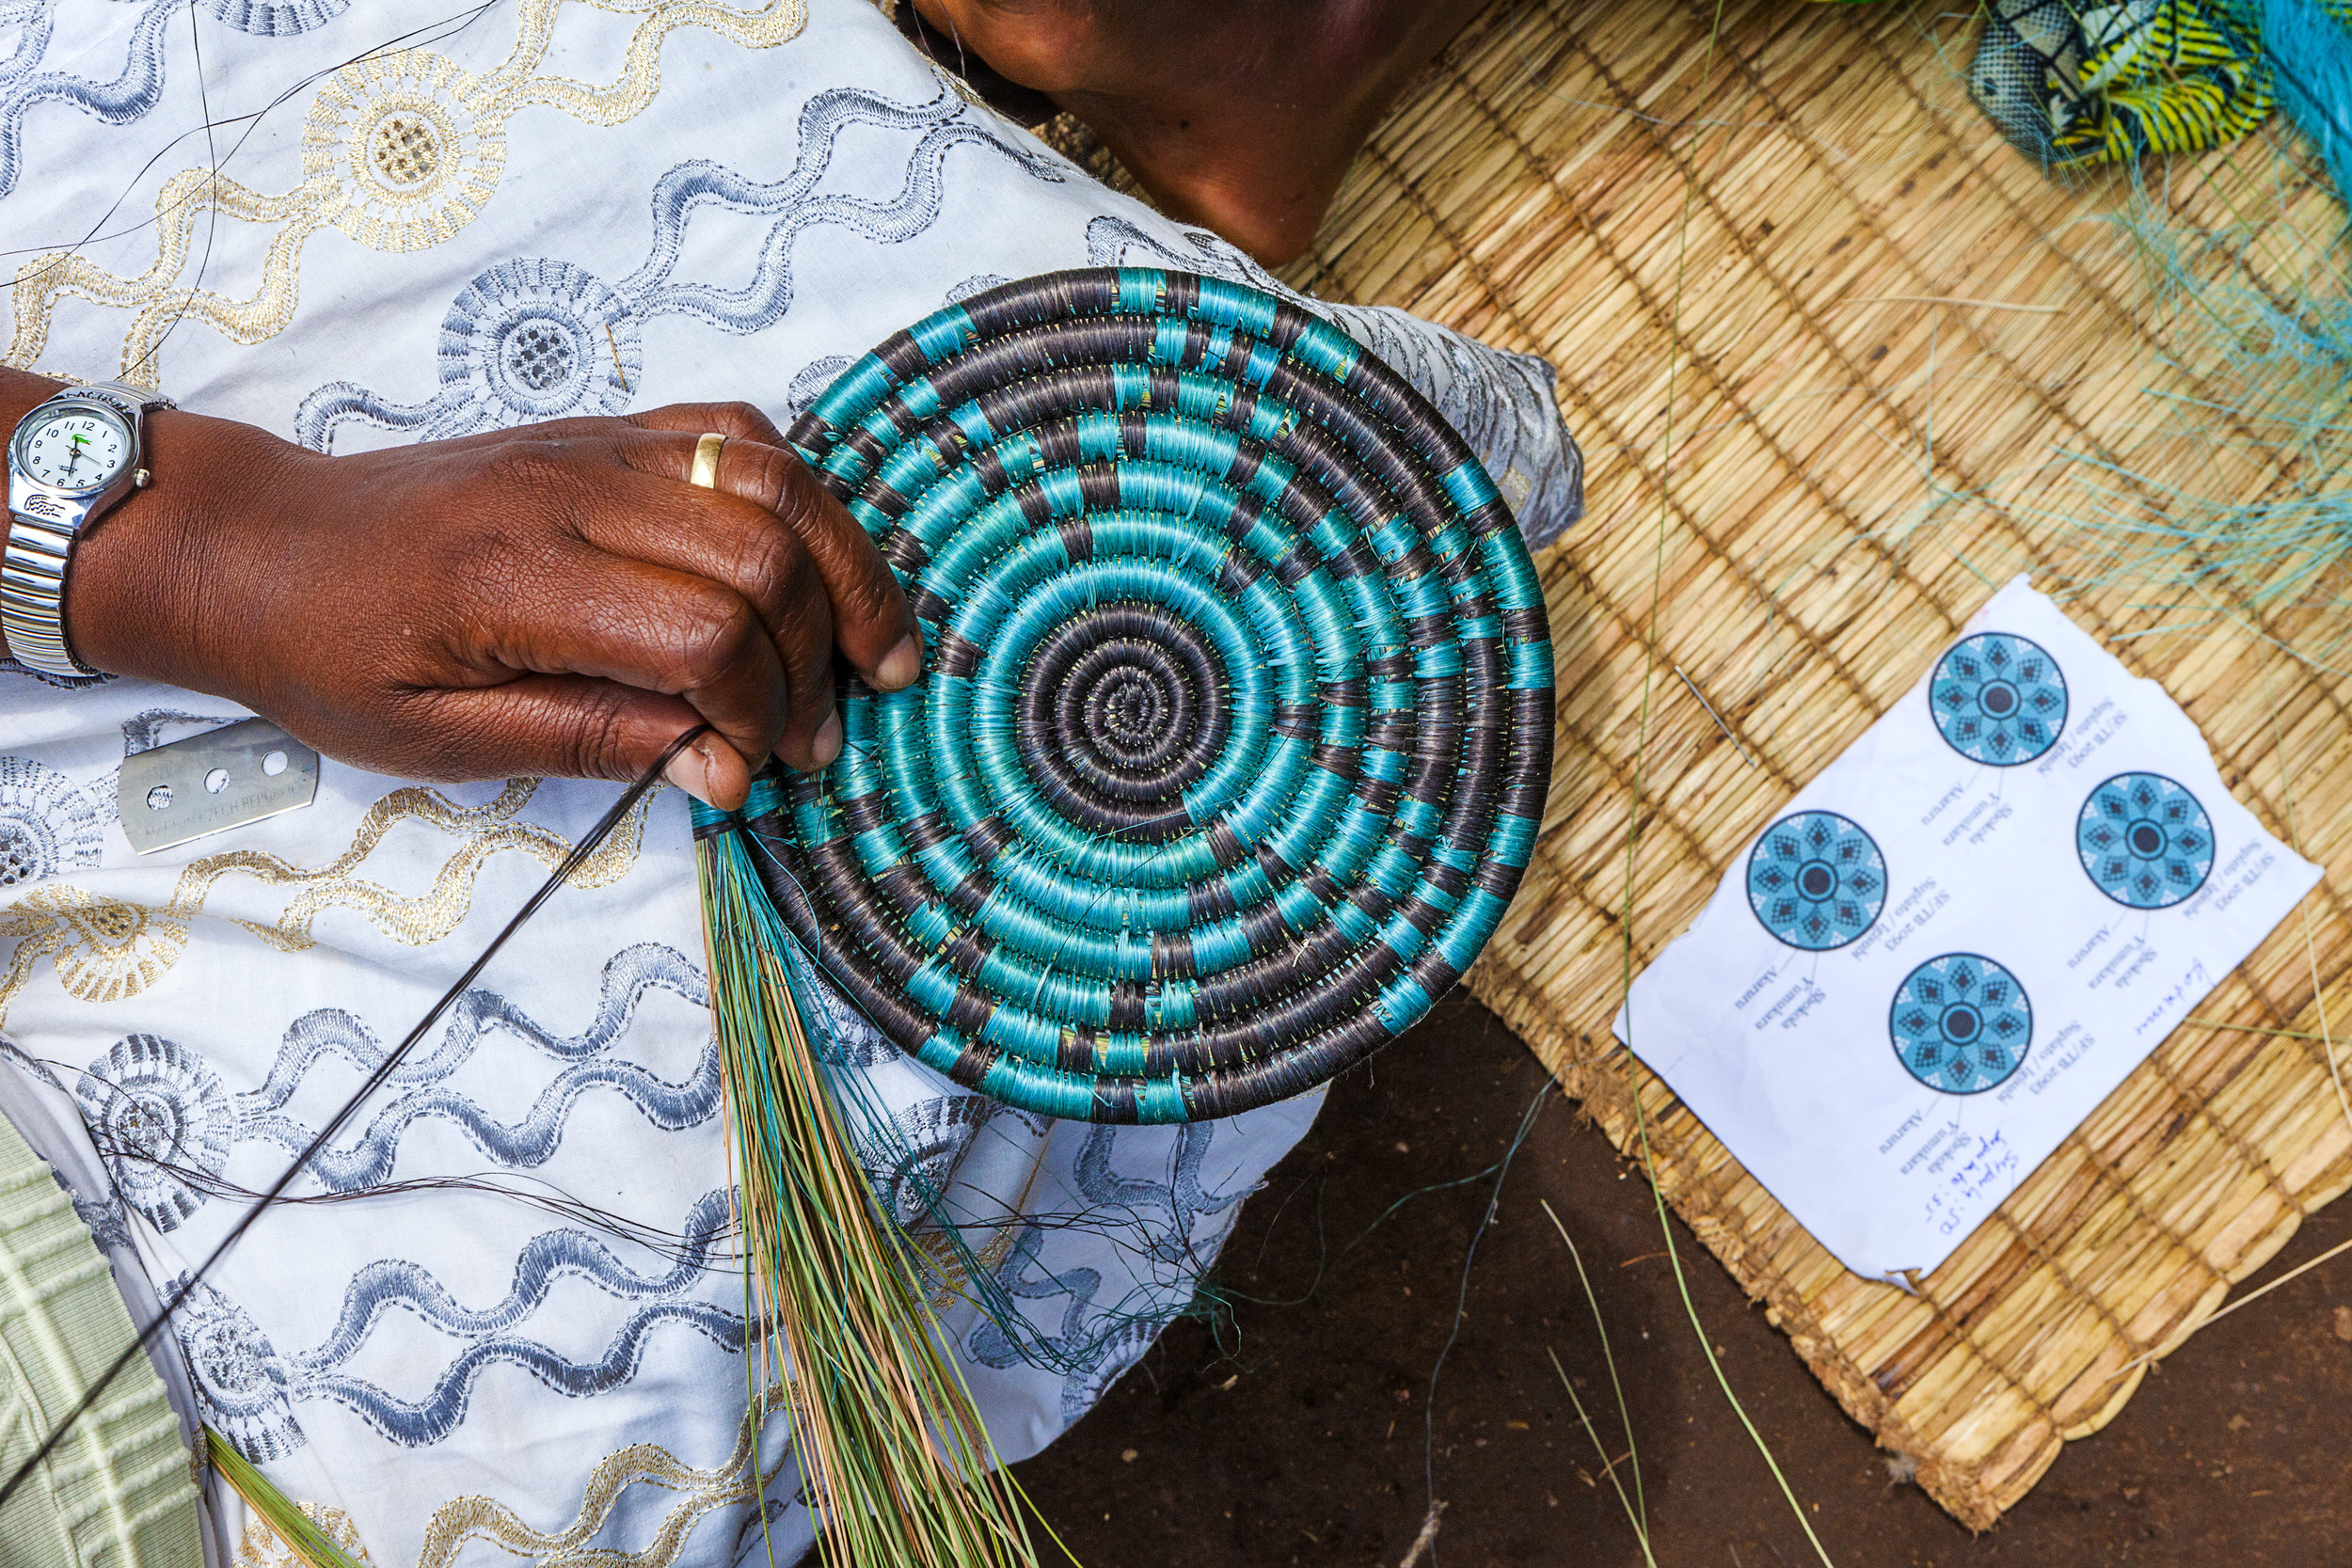 USADF grantee Gahaya Links is an artisan cooperative empowering cross-generations of women and girls, widows and orphans, and Hutu and Tutsi alike to build bridges through artisan enterprise.